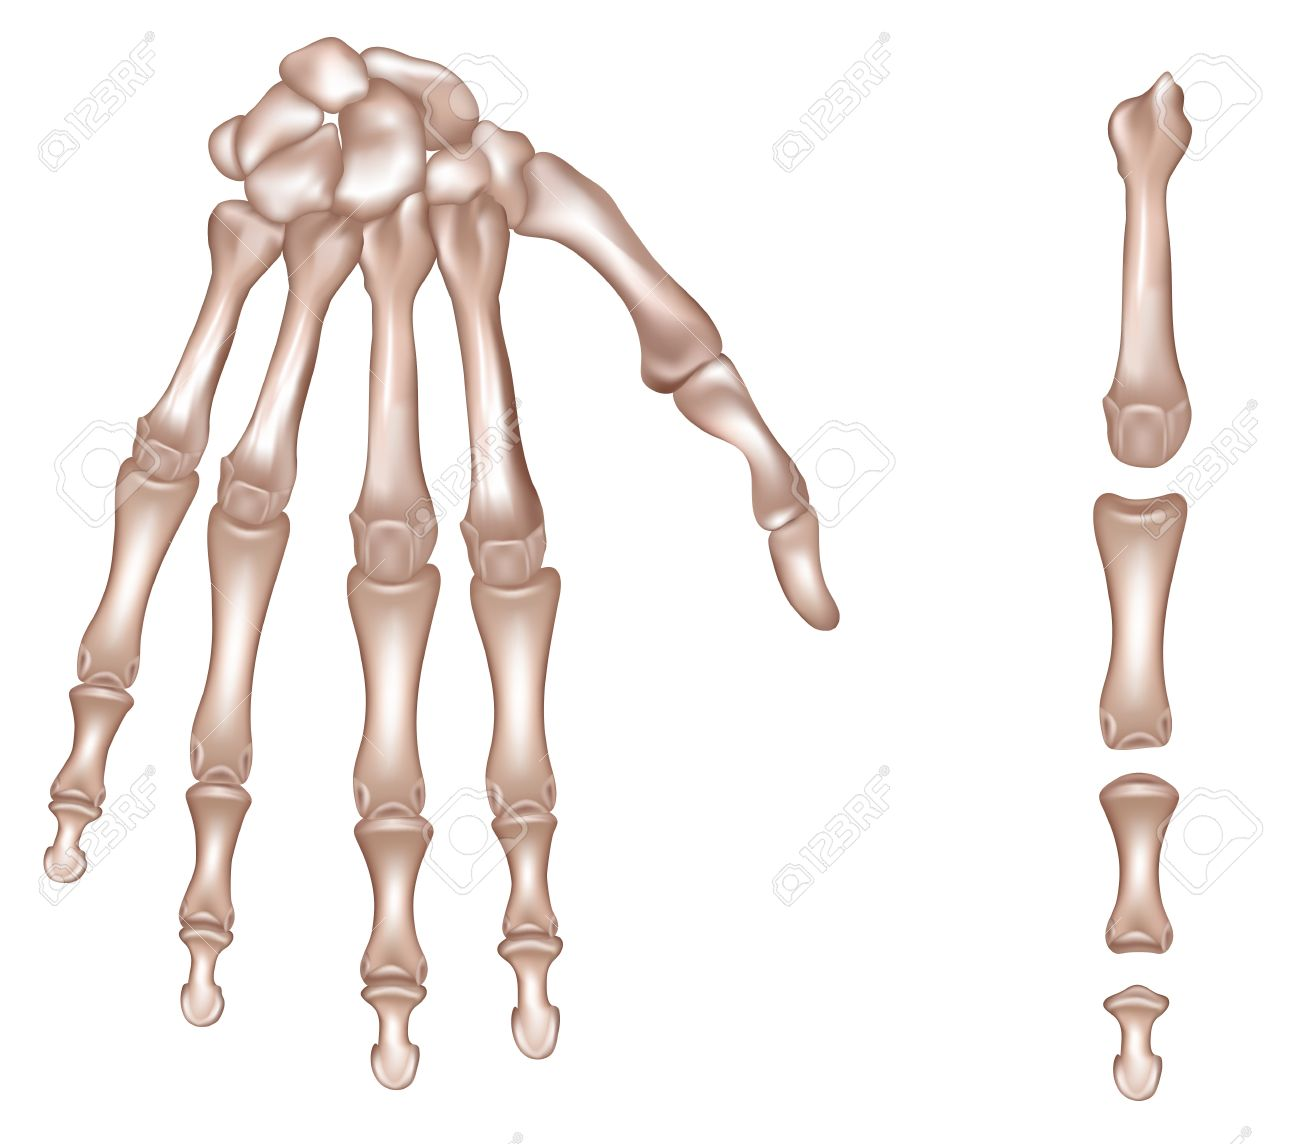 Bones Of The Right Hand Phalanges Of The Third Finger Of The ...